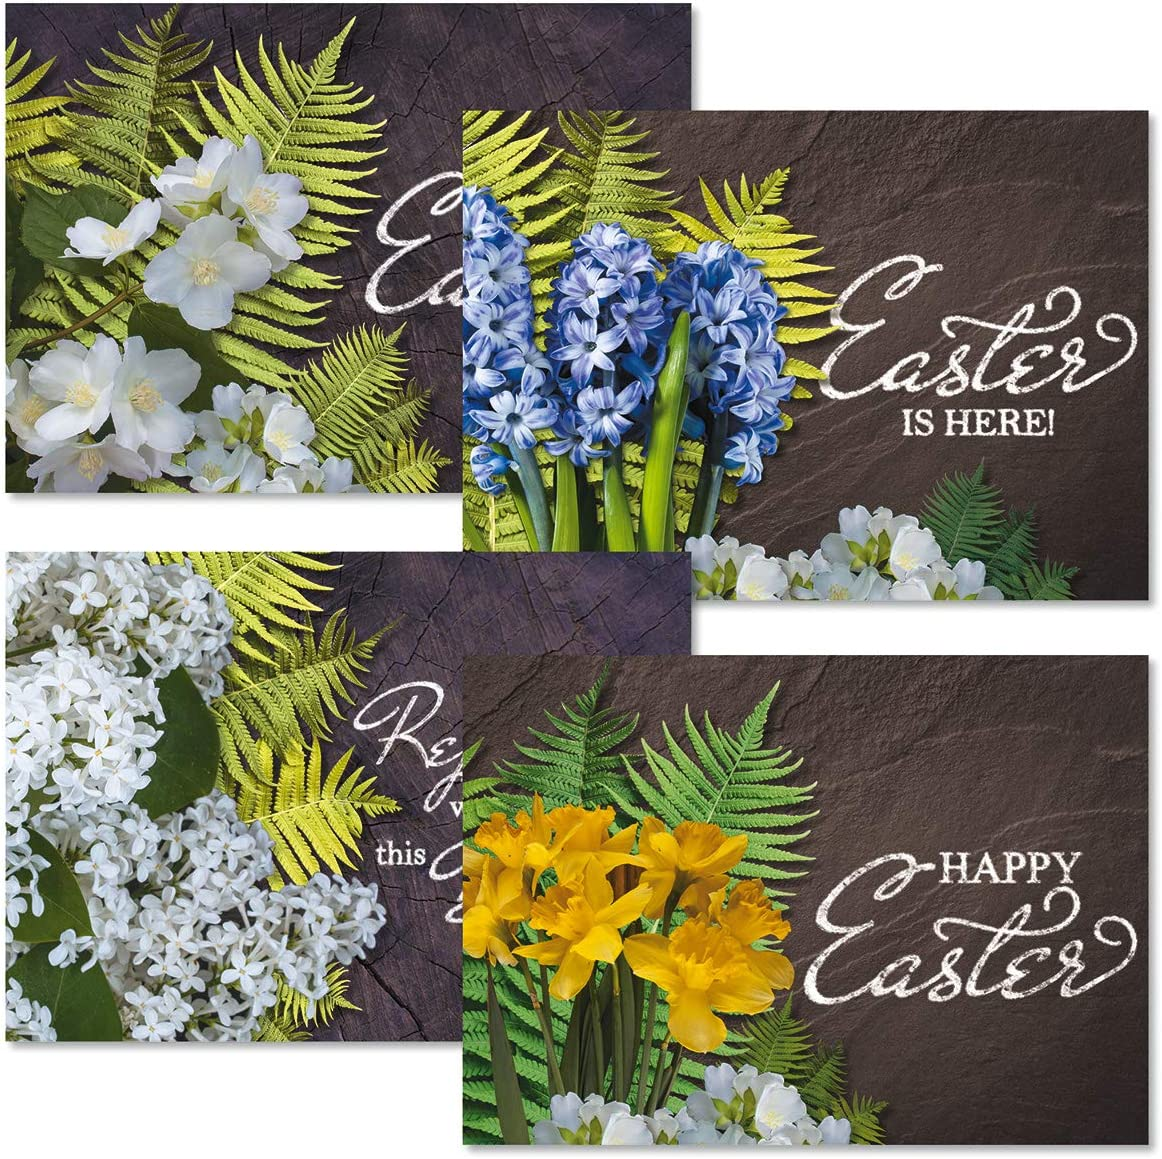 Fresh Cut Easter Greeting Cards New arrival - Set Design Max 80% OFF 2 5